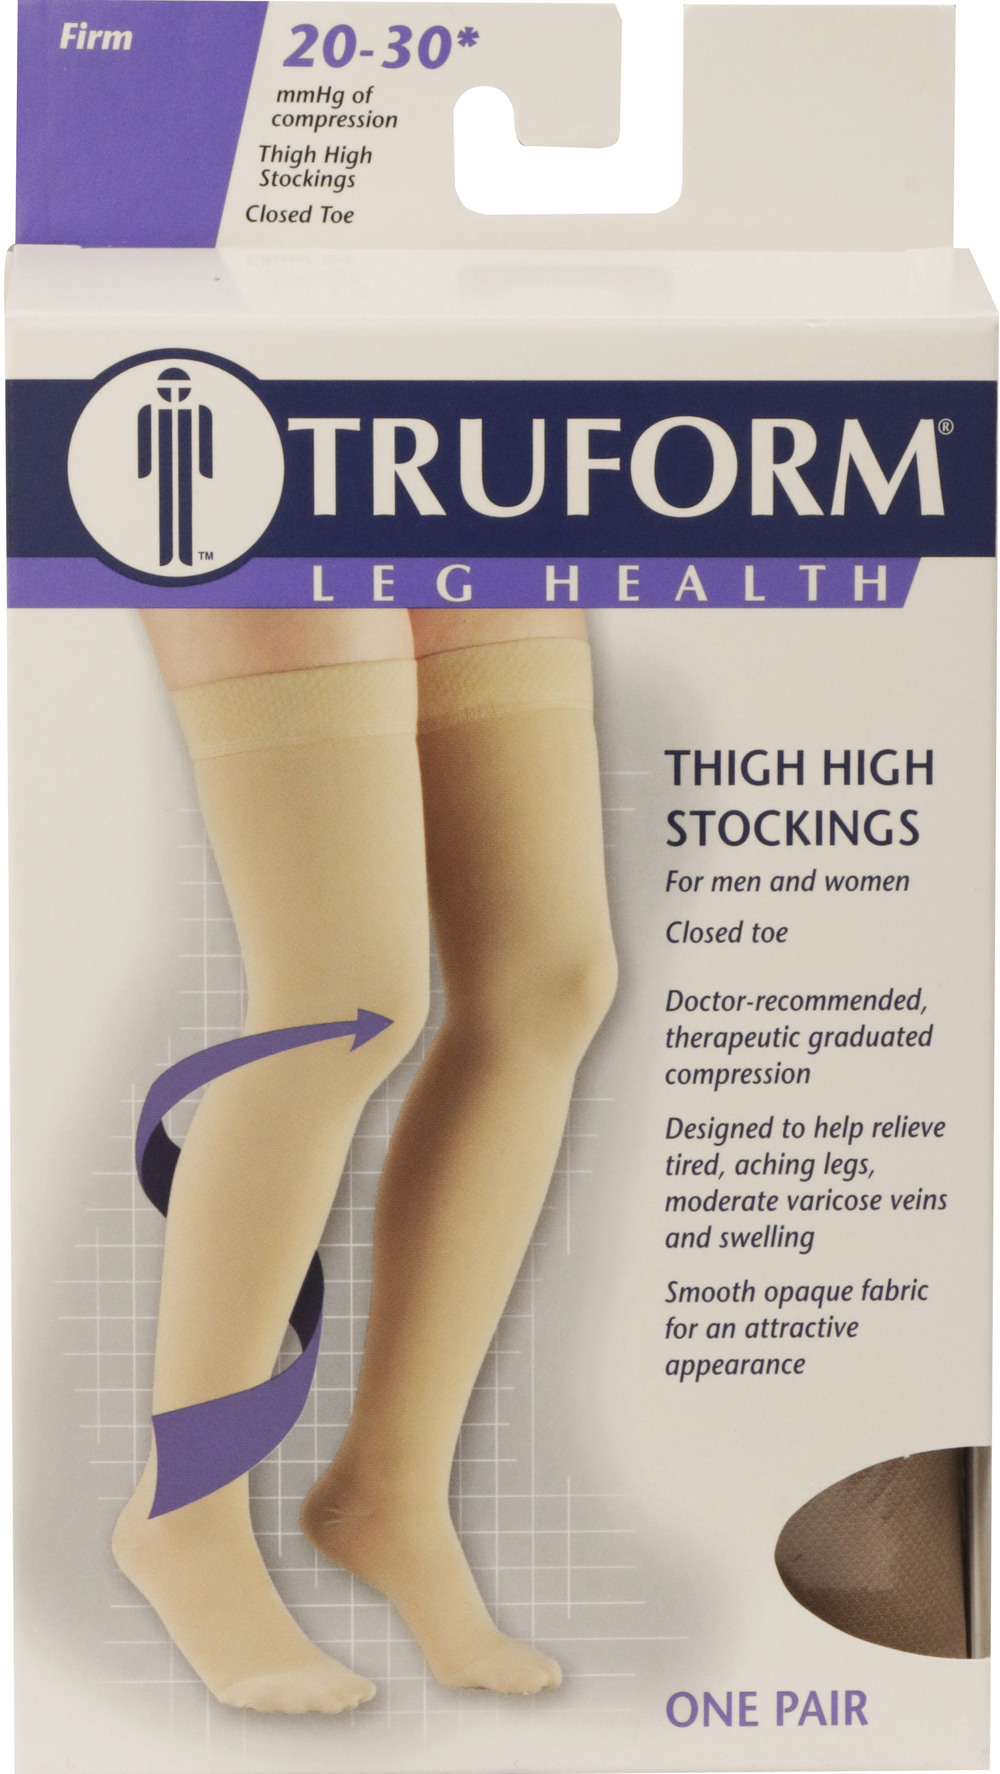 Truform, 8868, 20-30 mmHg, Thigh High, Silicone Dot Top, Closed Toe, Stockings, Package